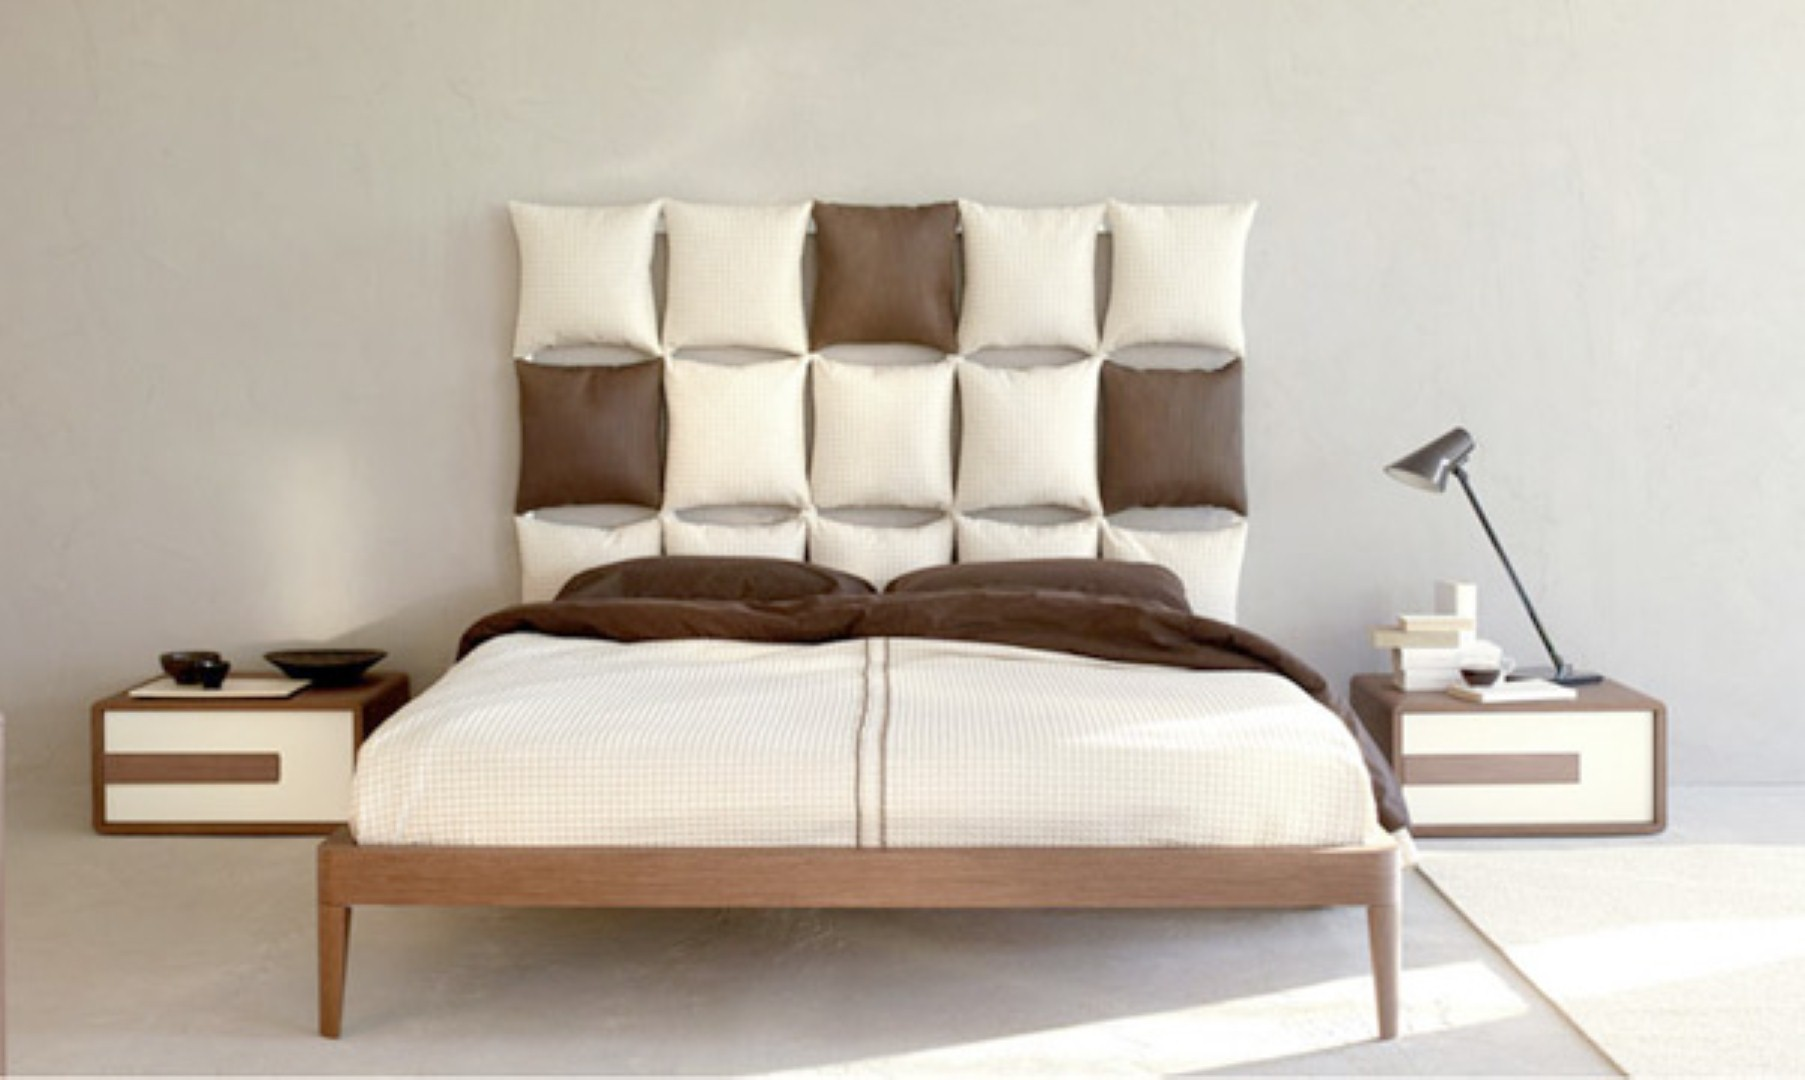 Unique king bed frame - Low Profile Queen Bed Frame